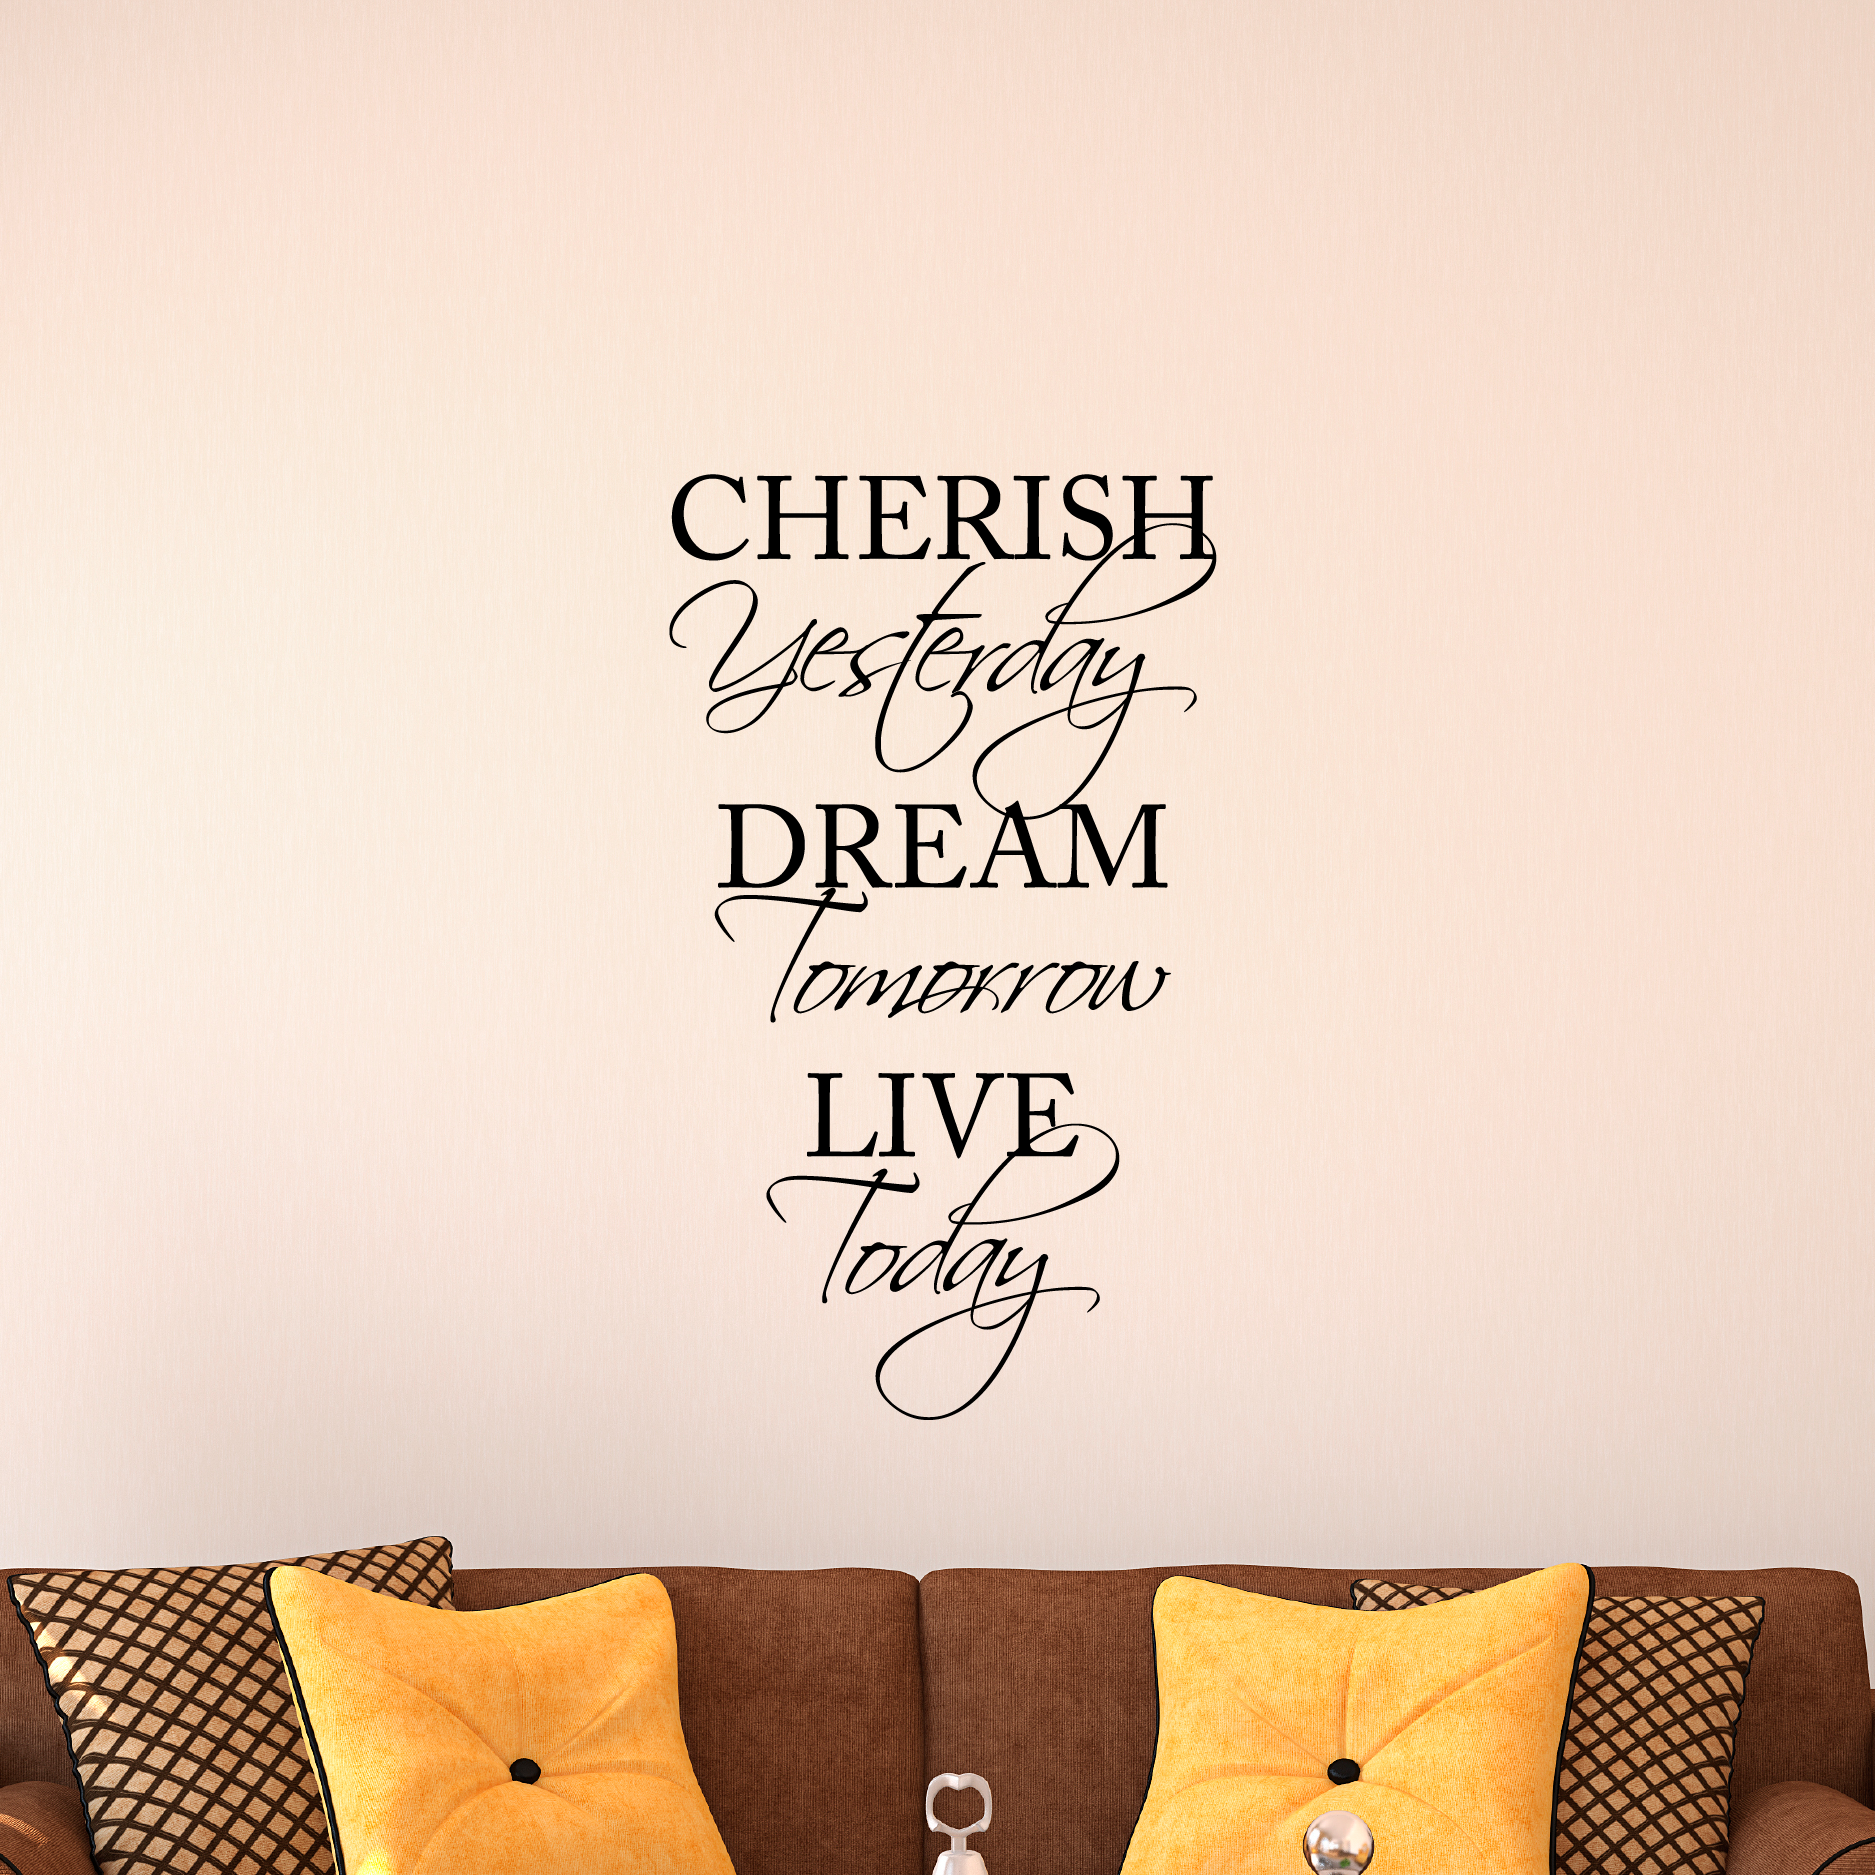 Cherish Yesterday Dream Tomorrow Live Today Wall Quotes Decal